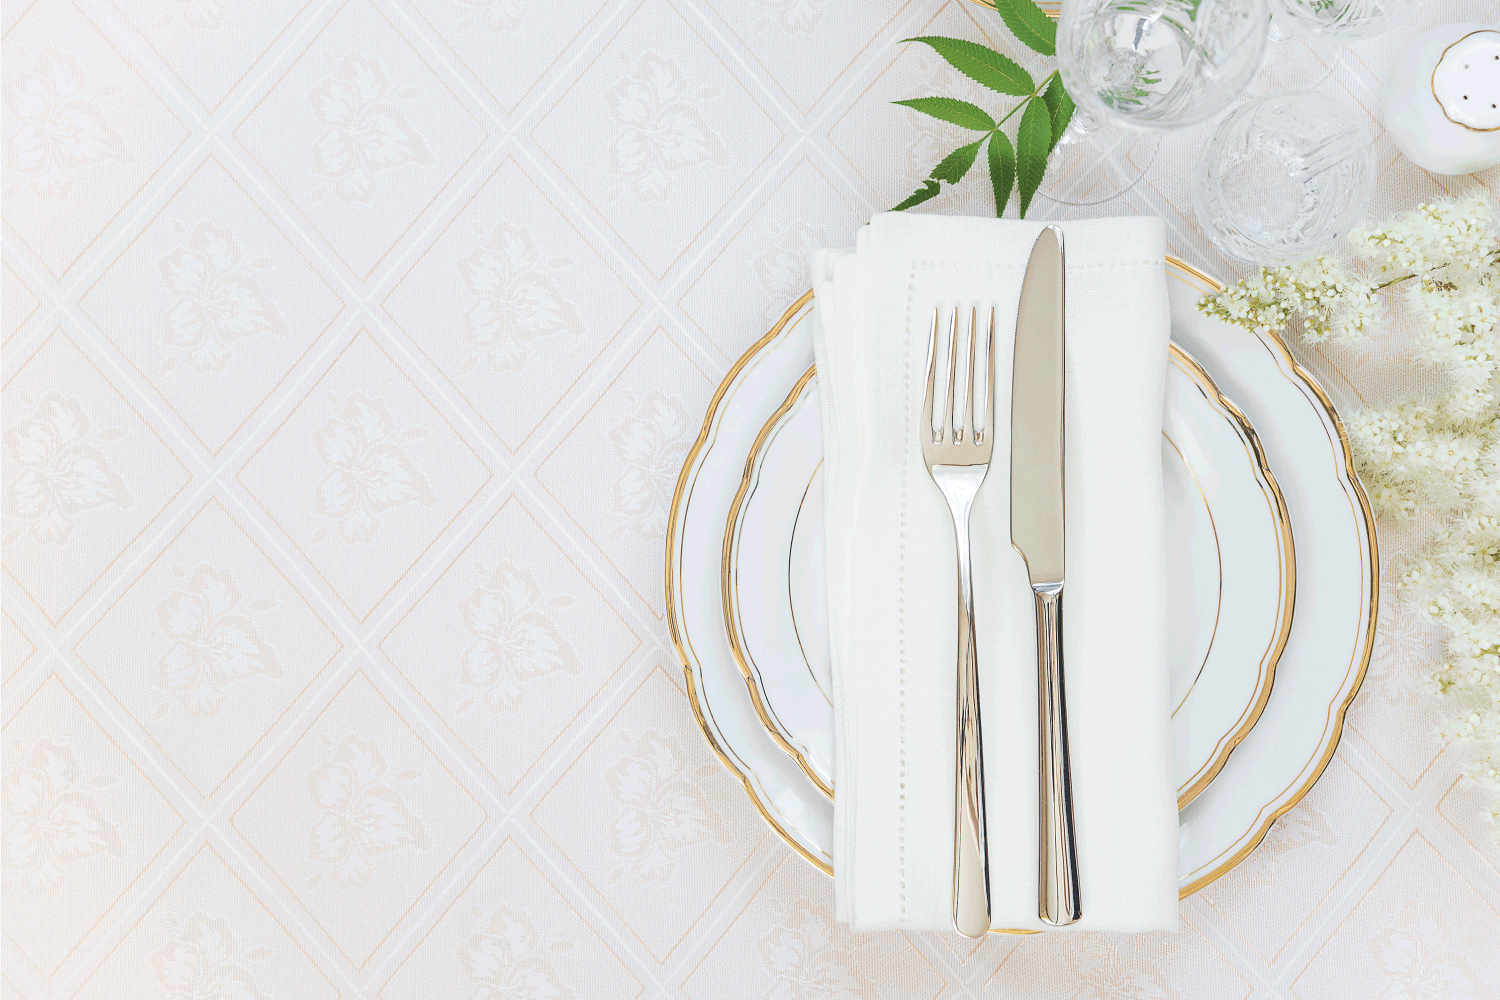 silver cutlery on top of table napkin on a set of ceramic flatware on a table with tablecloth